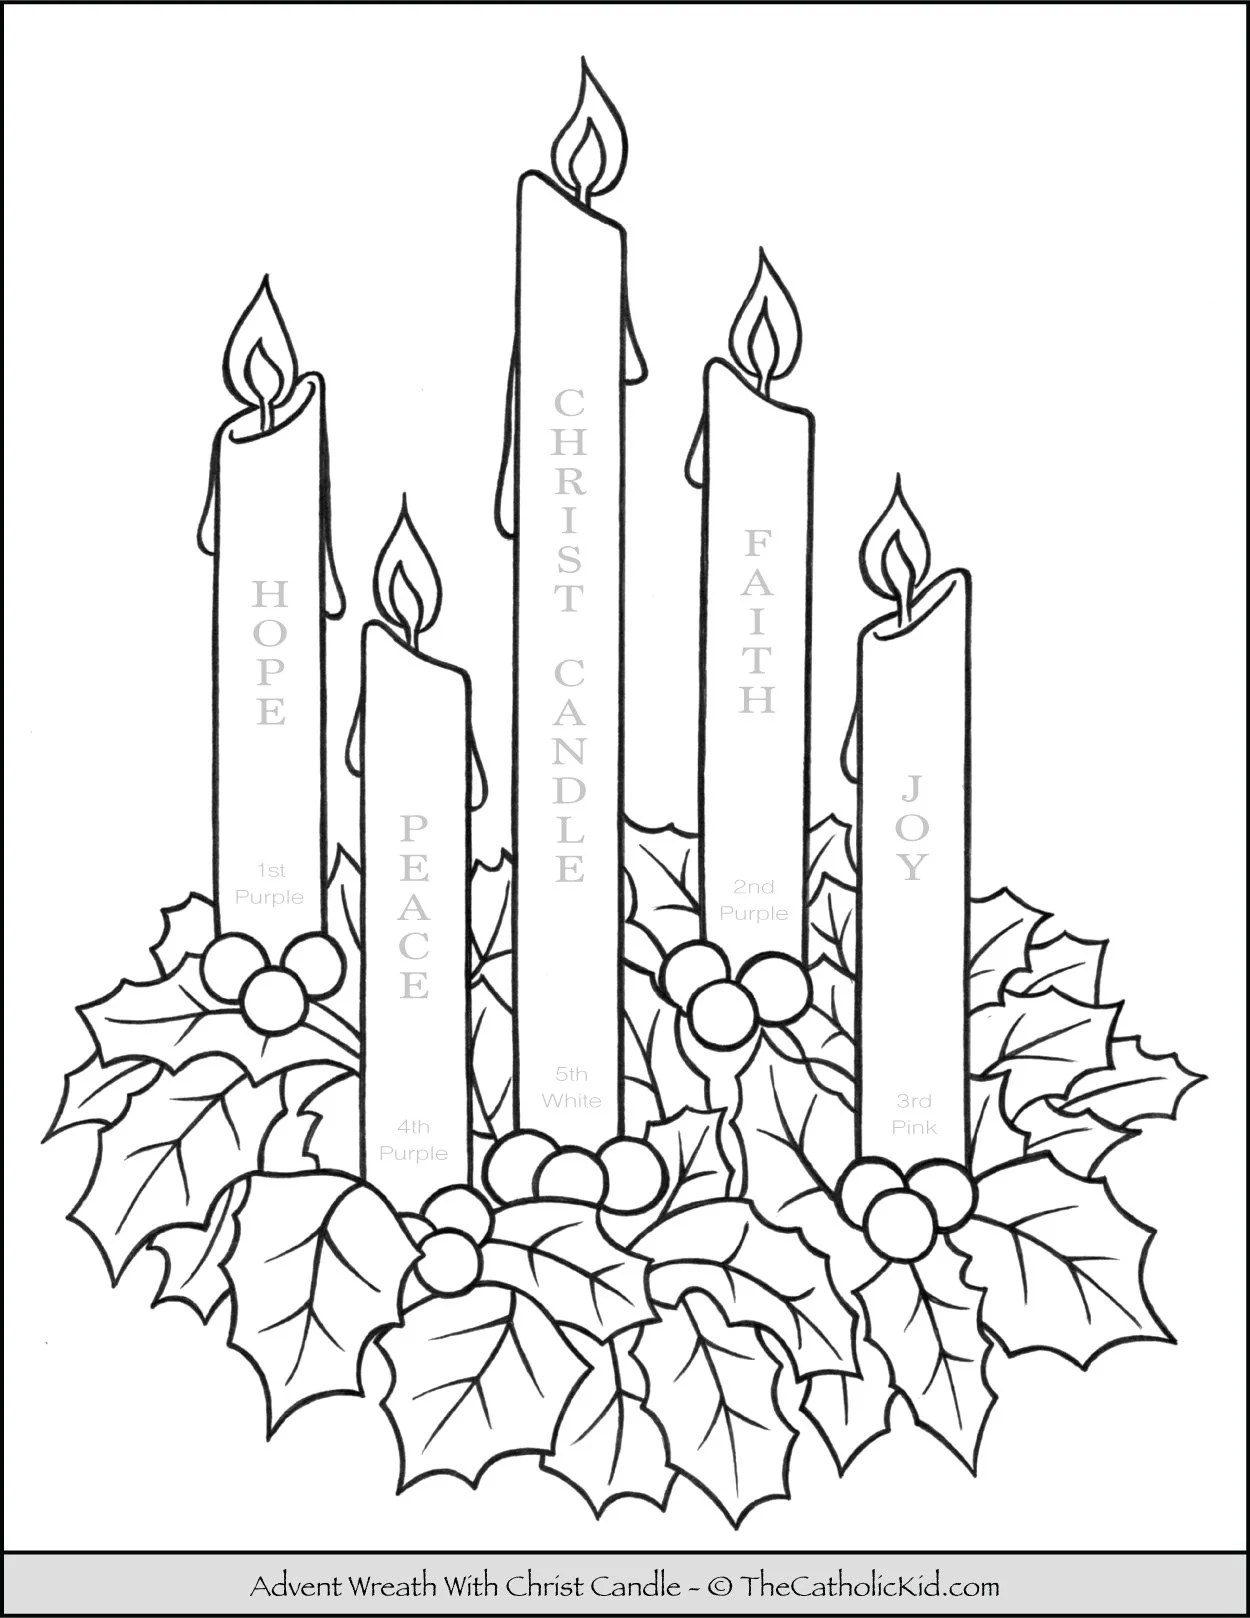 Advent Wreath Coloring Page With Candle Names Amp Meanings